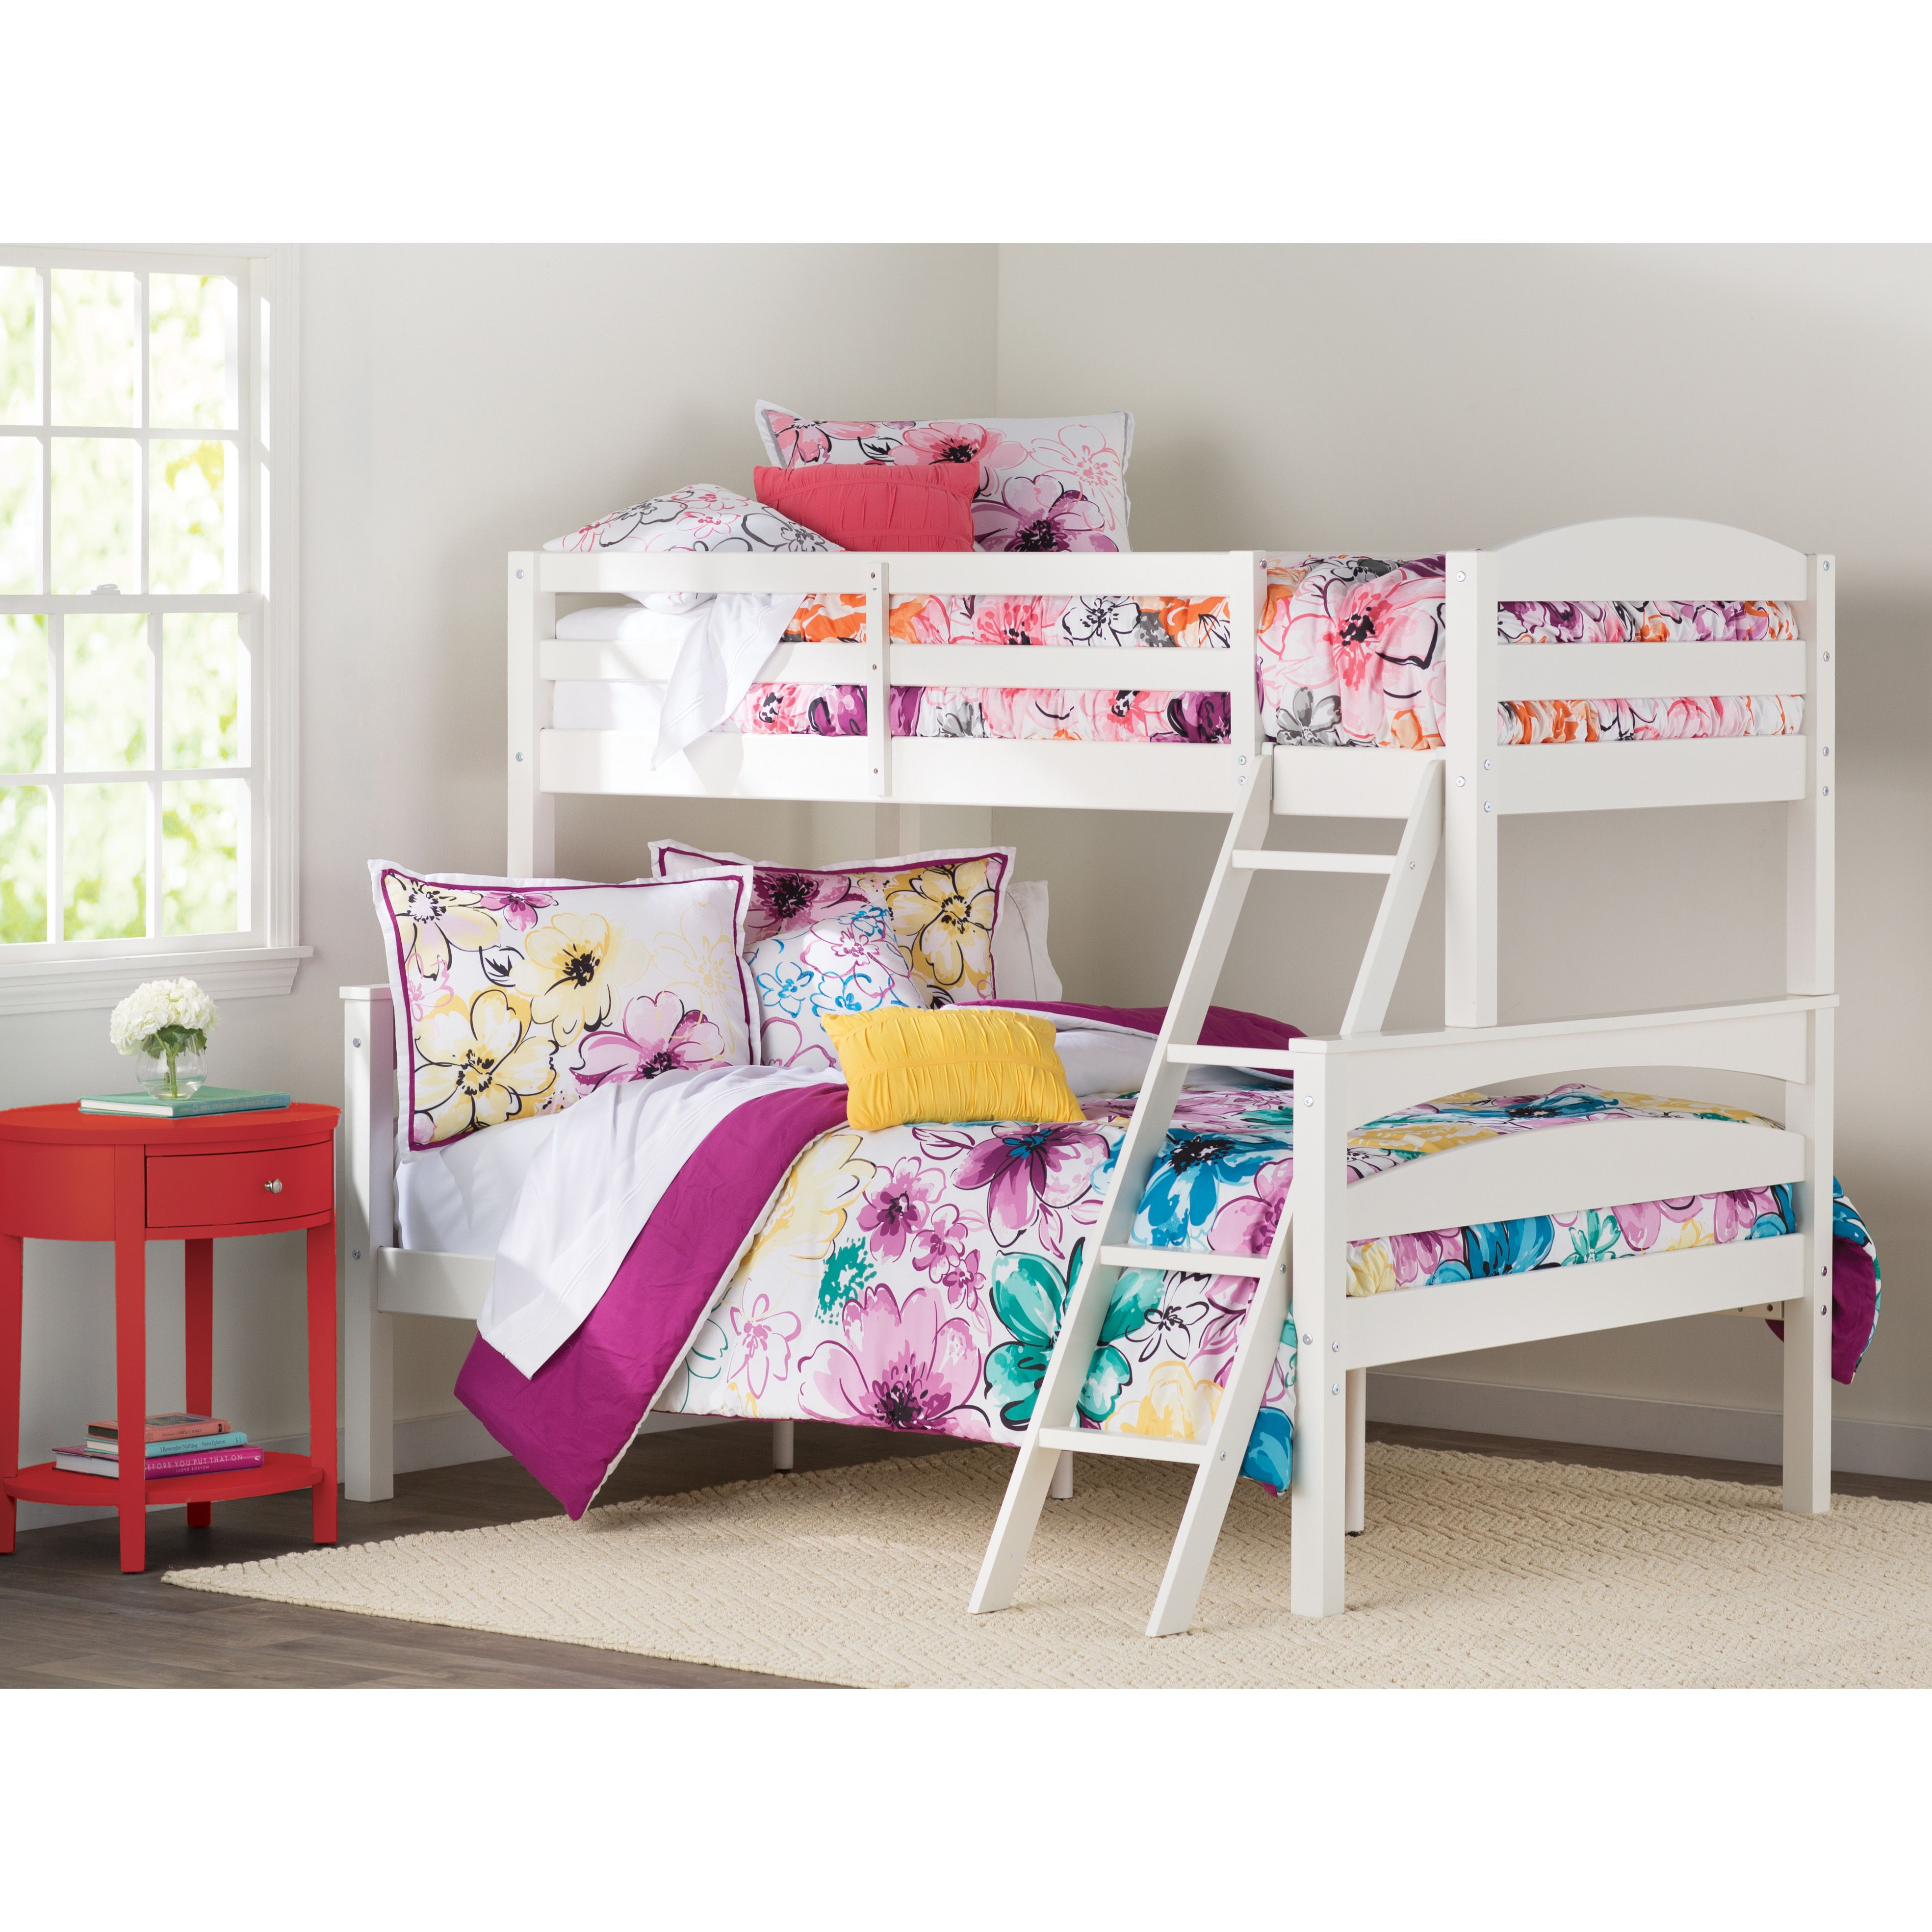 Sienna Rose Twin over Full Bunk Bed Full bunk beds, Bunk